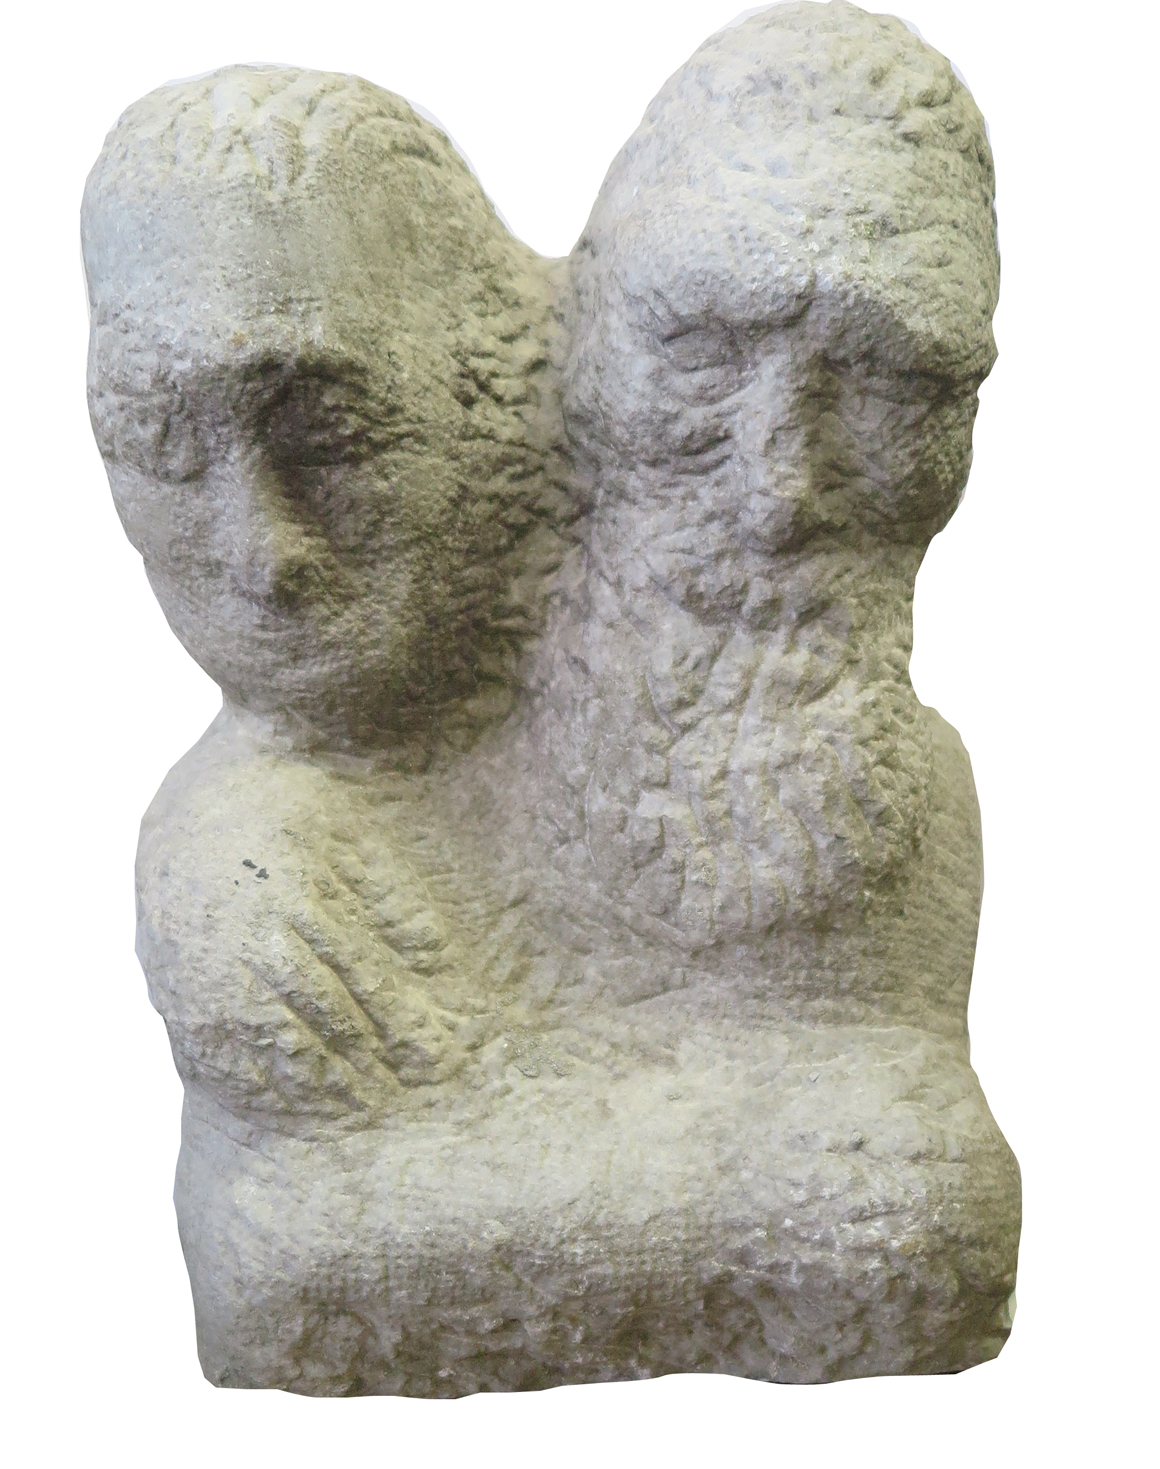 Carved Stone Sculpture Women And Men By Sam Grodensky